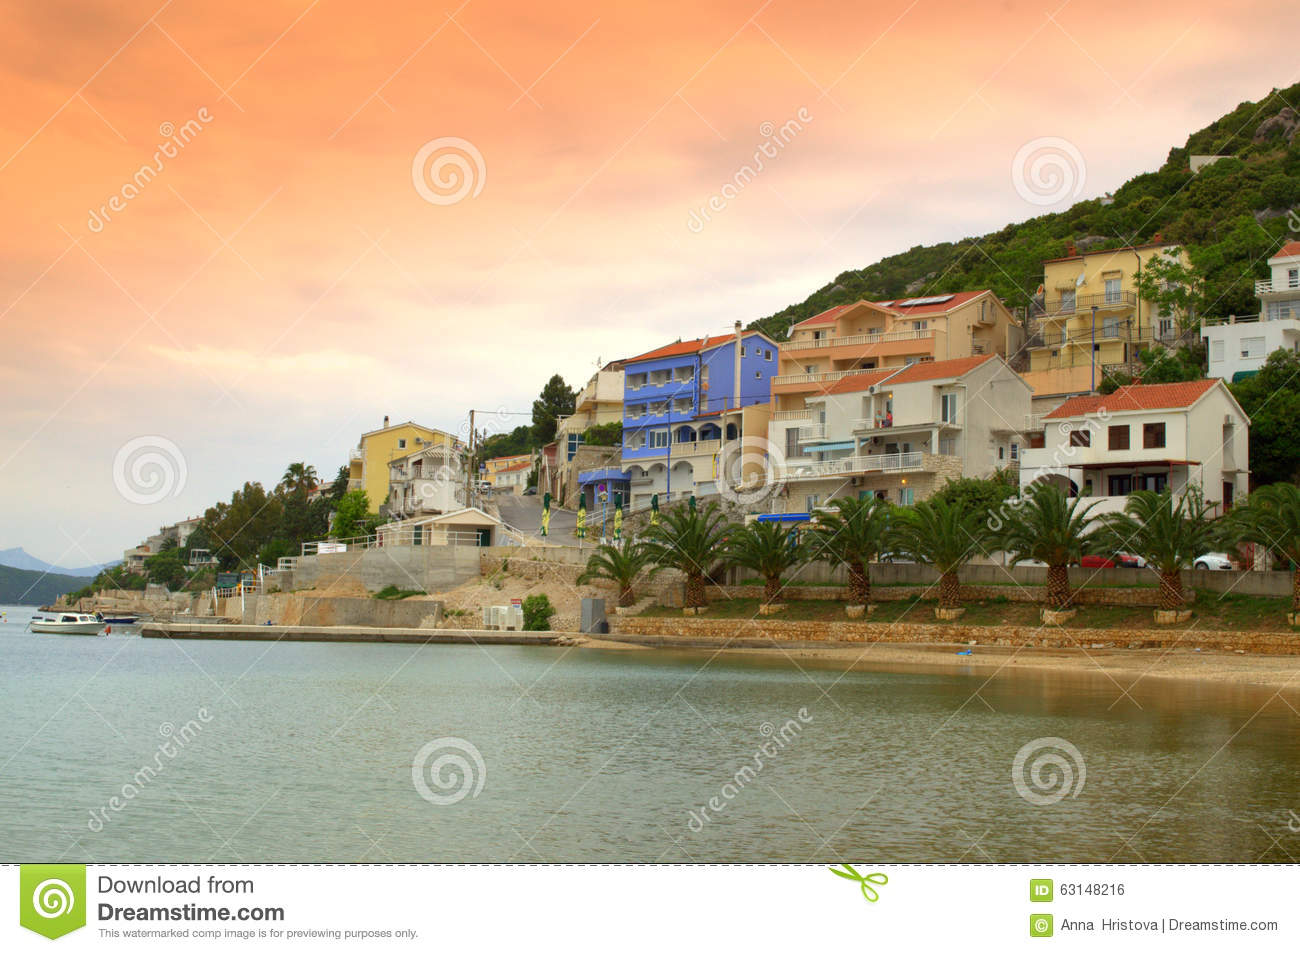 Nice Small Town On Adriatic Coast Stock Photo.